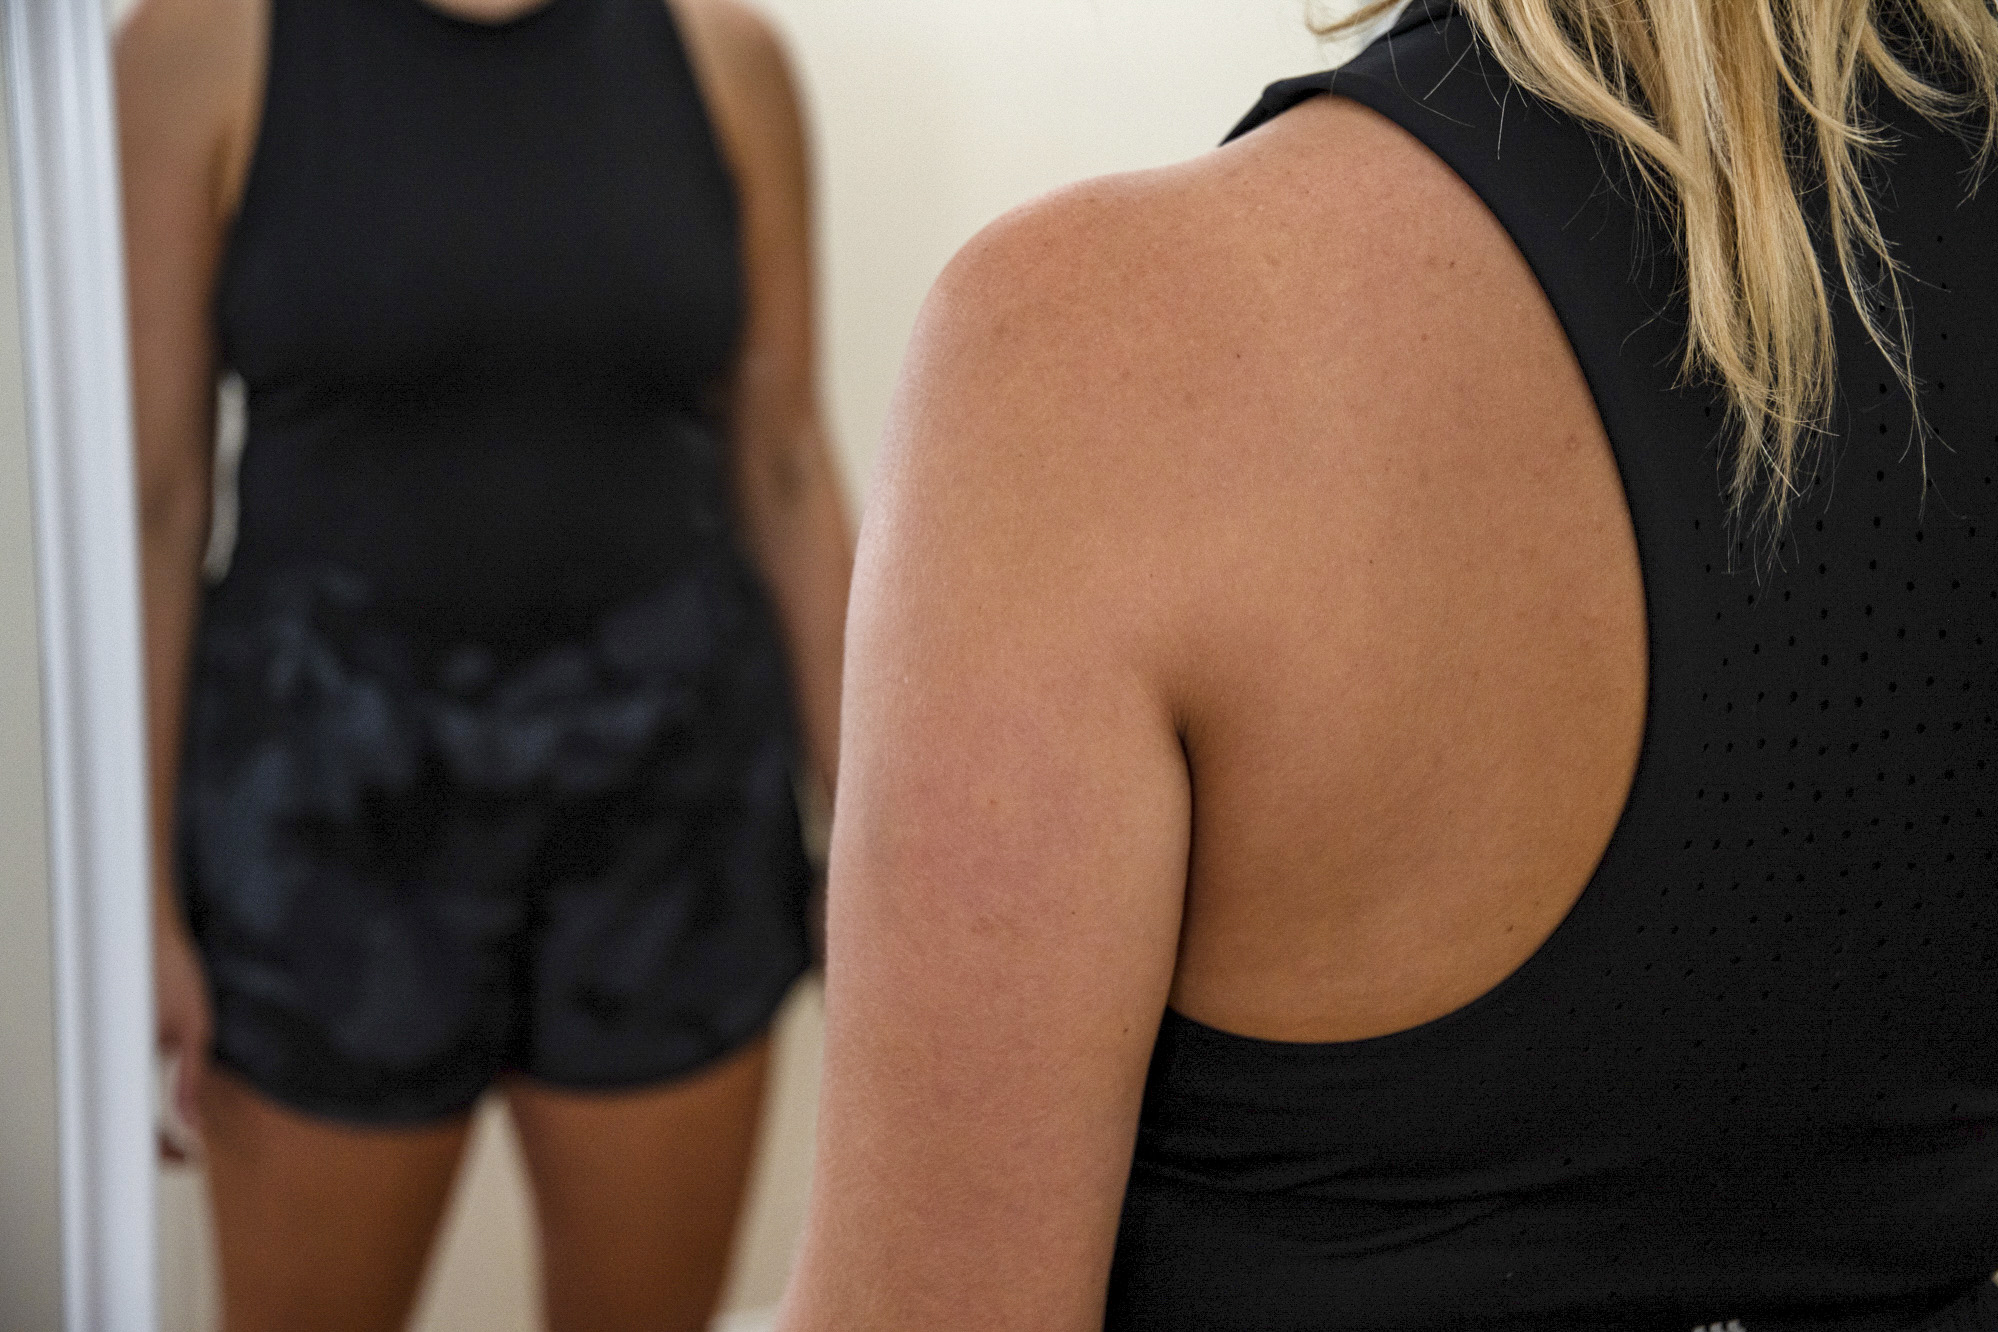 Why Working Out Should Be About More Than What You See In The Mirror